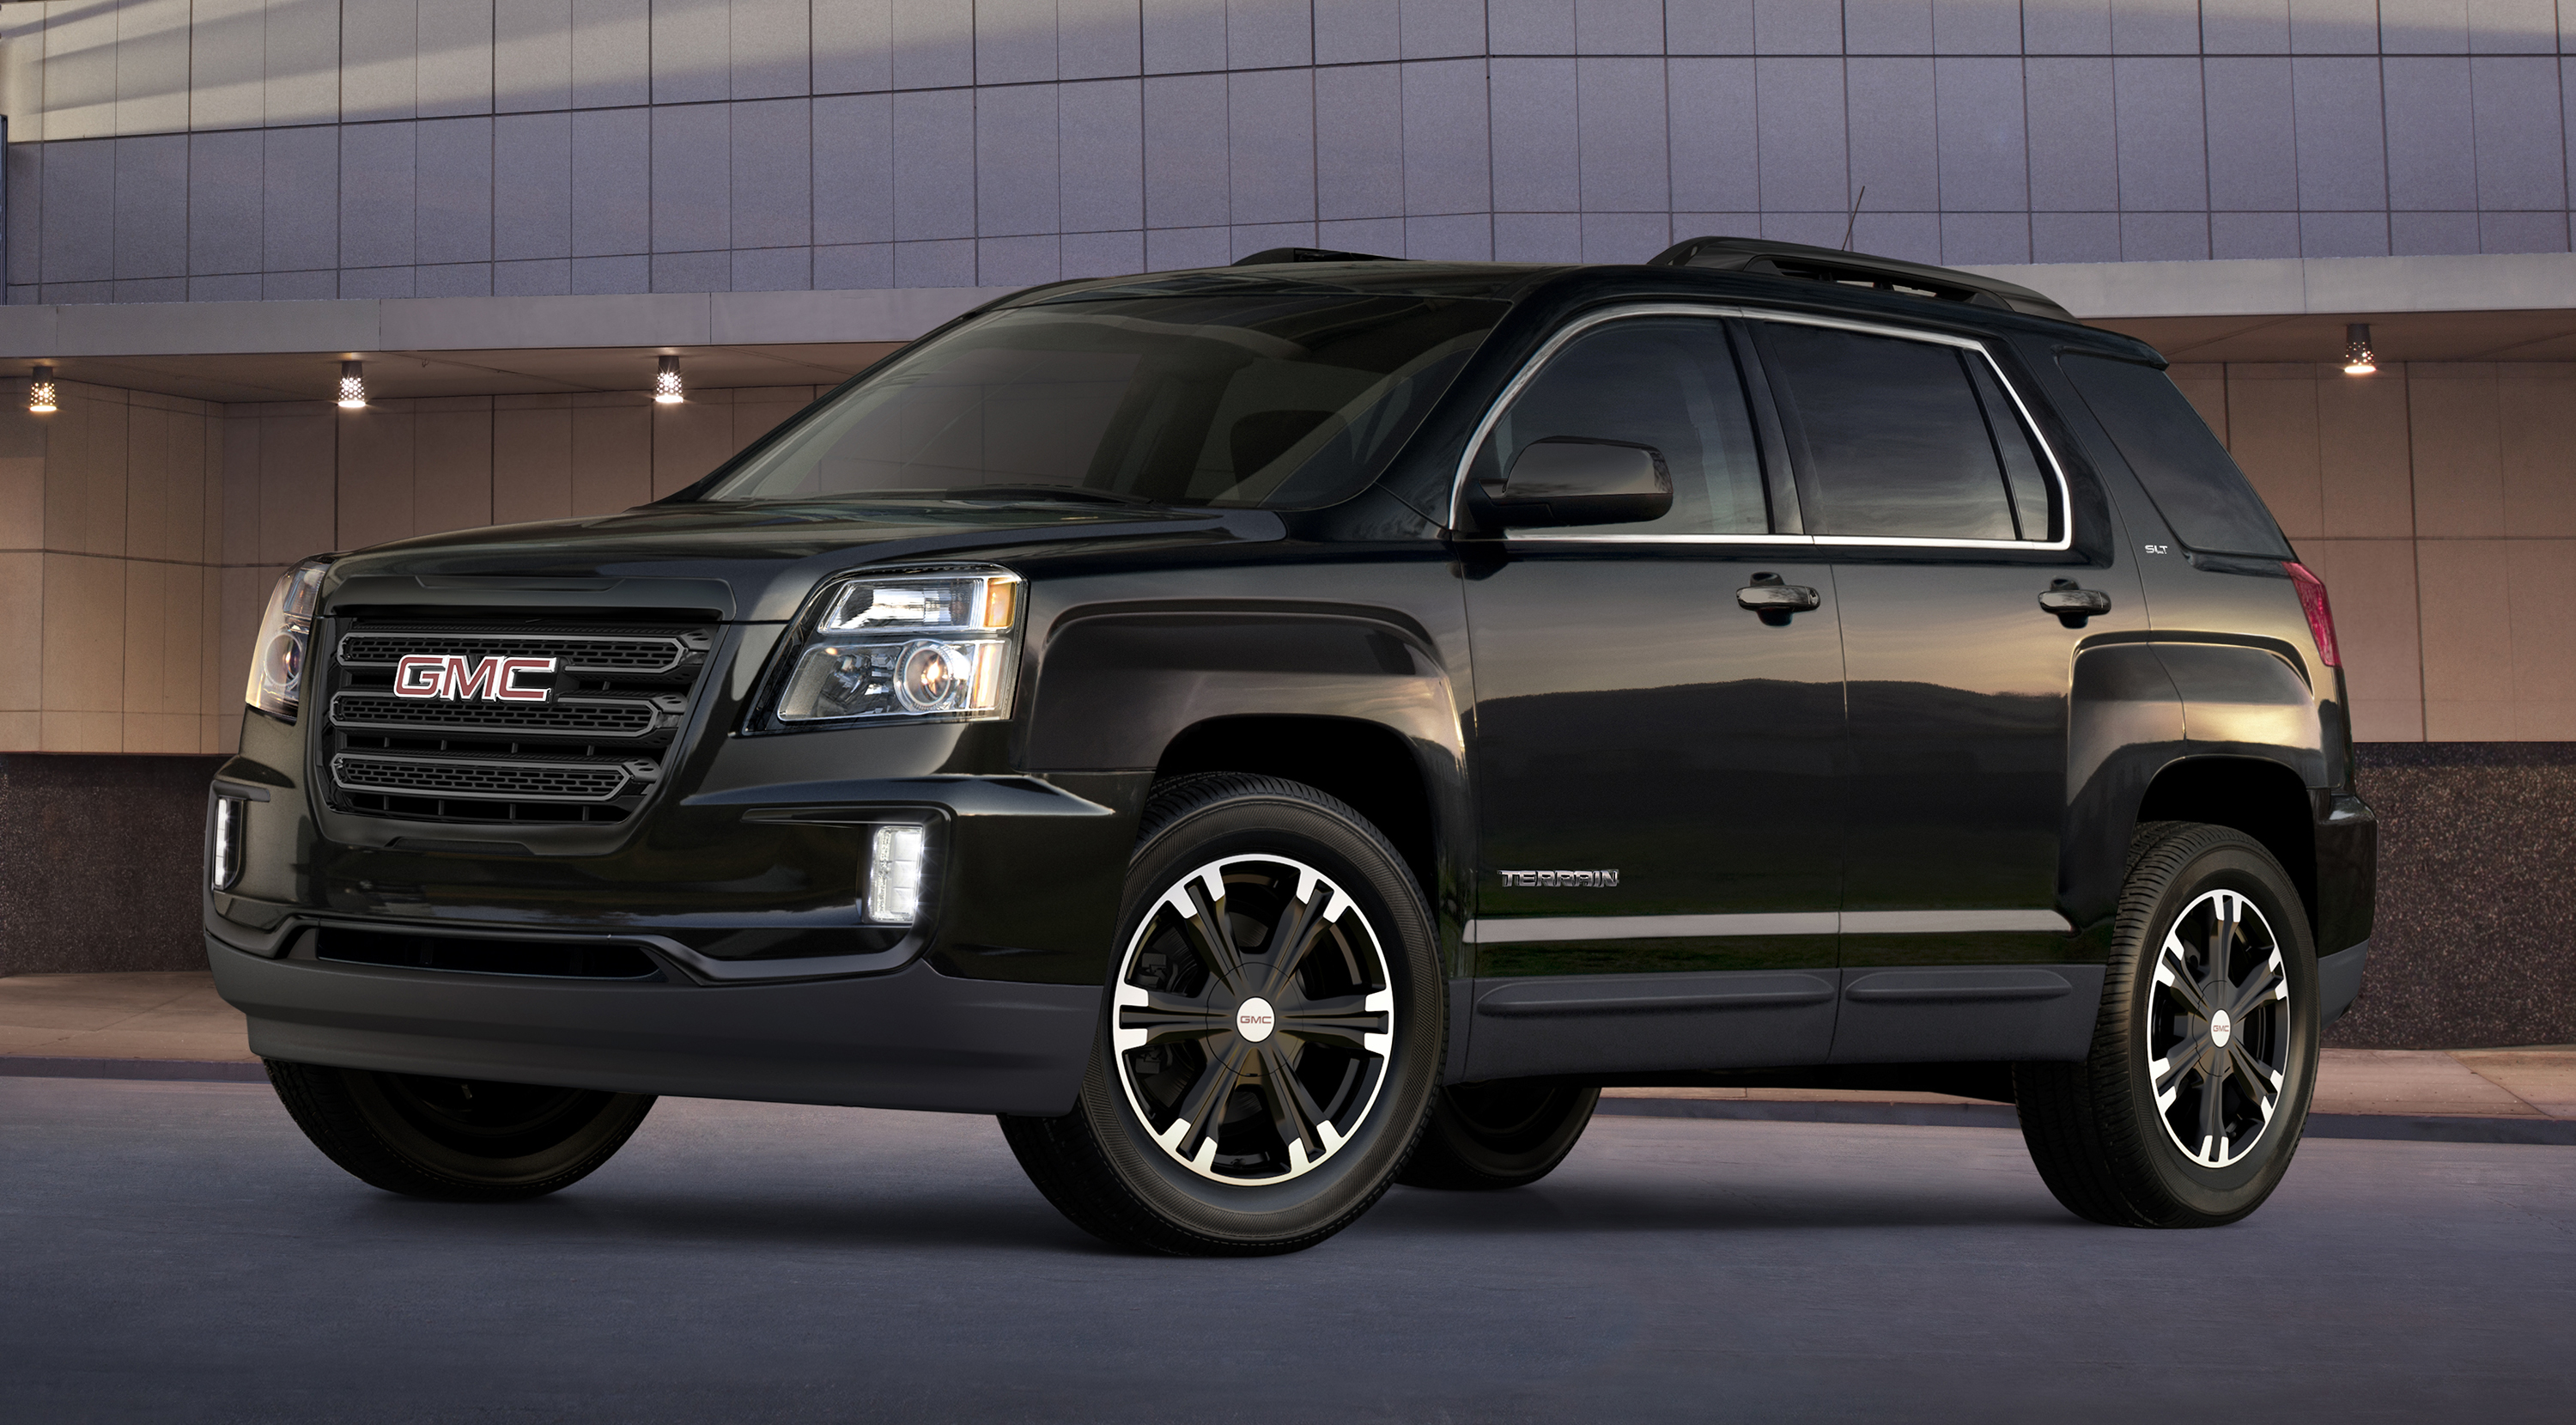 Luxury Cars Under 30k >> GMC Introduces 2017 Terrain Nightfall Edition - autoevolution